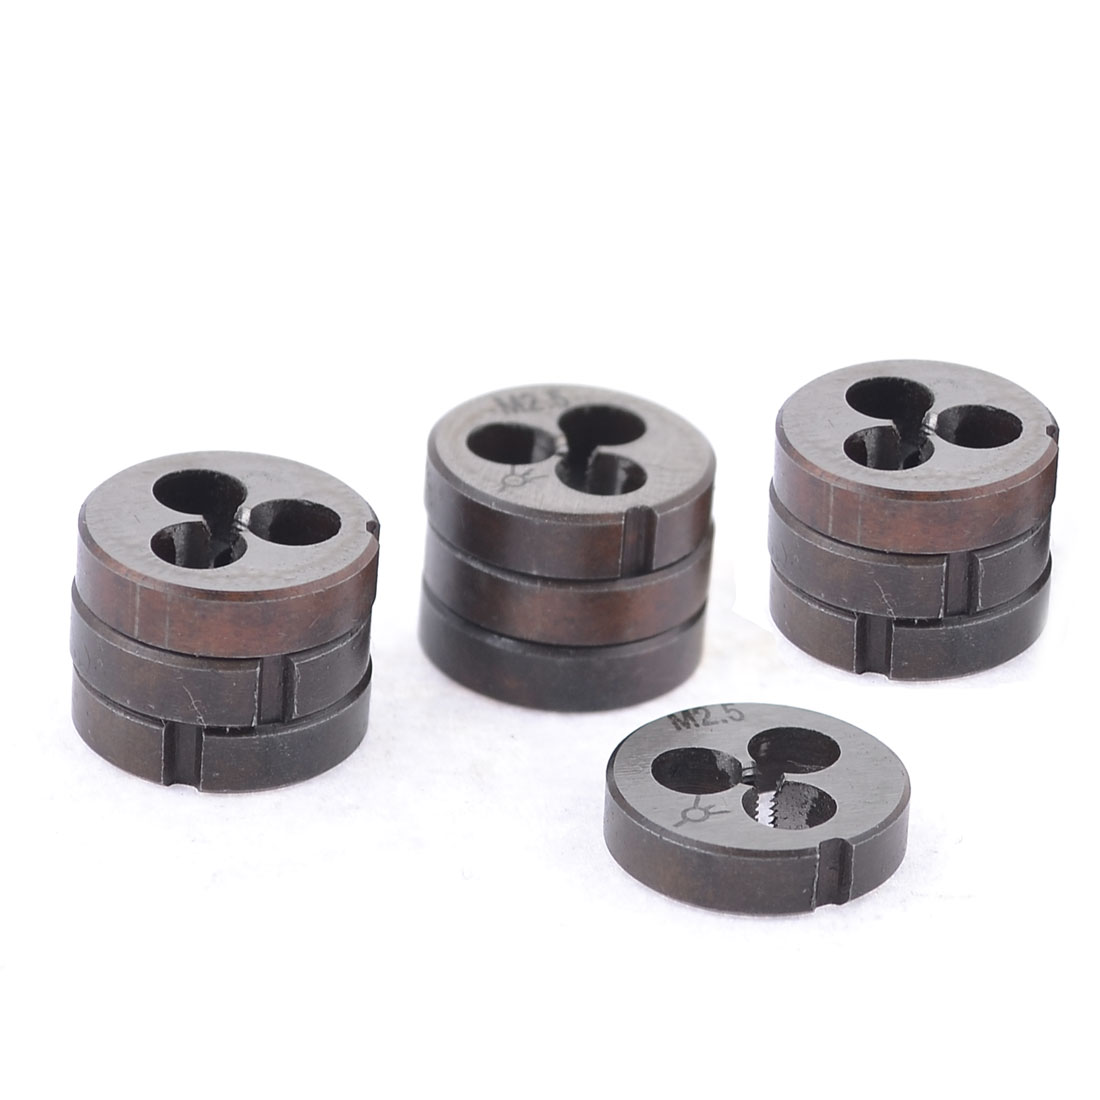 10 Pcs 16mm Outside Diameter 2mm Pitch Circular Shape Round Thread Die